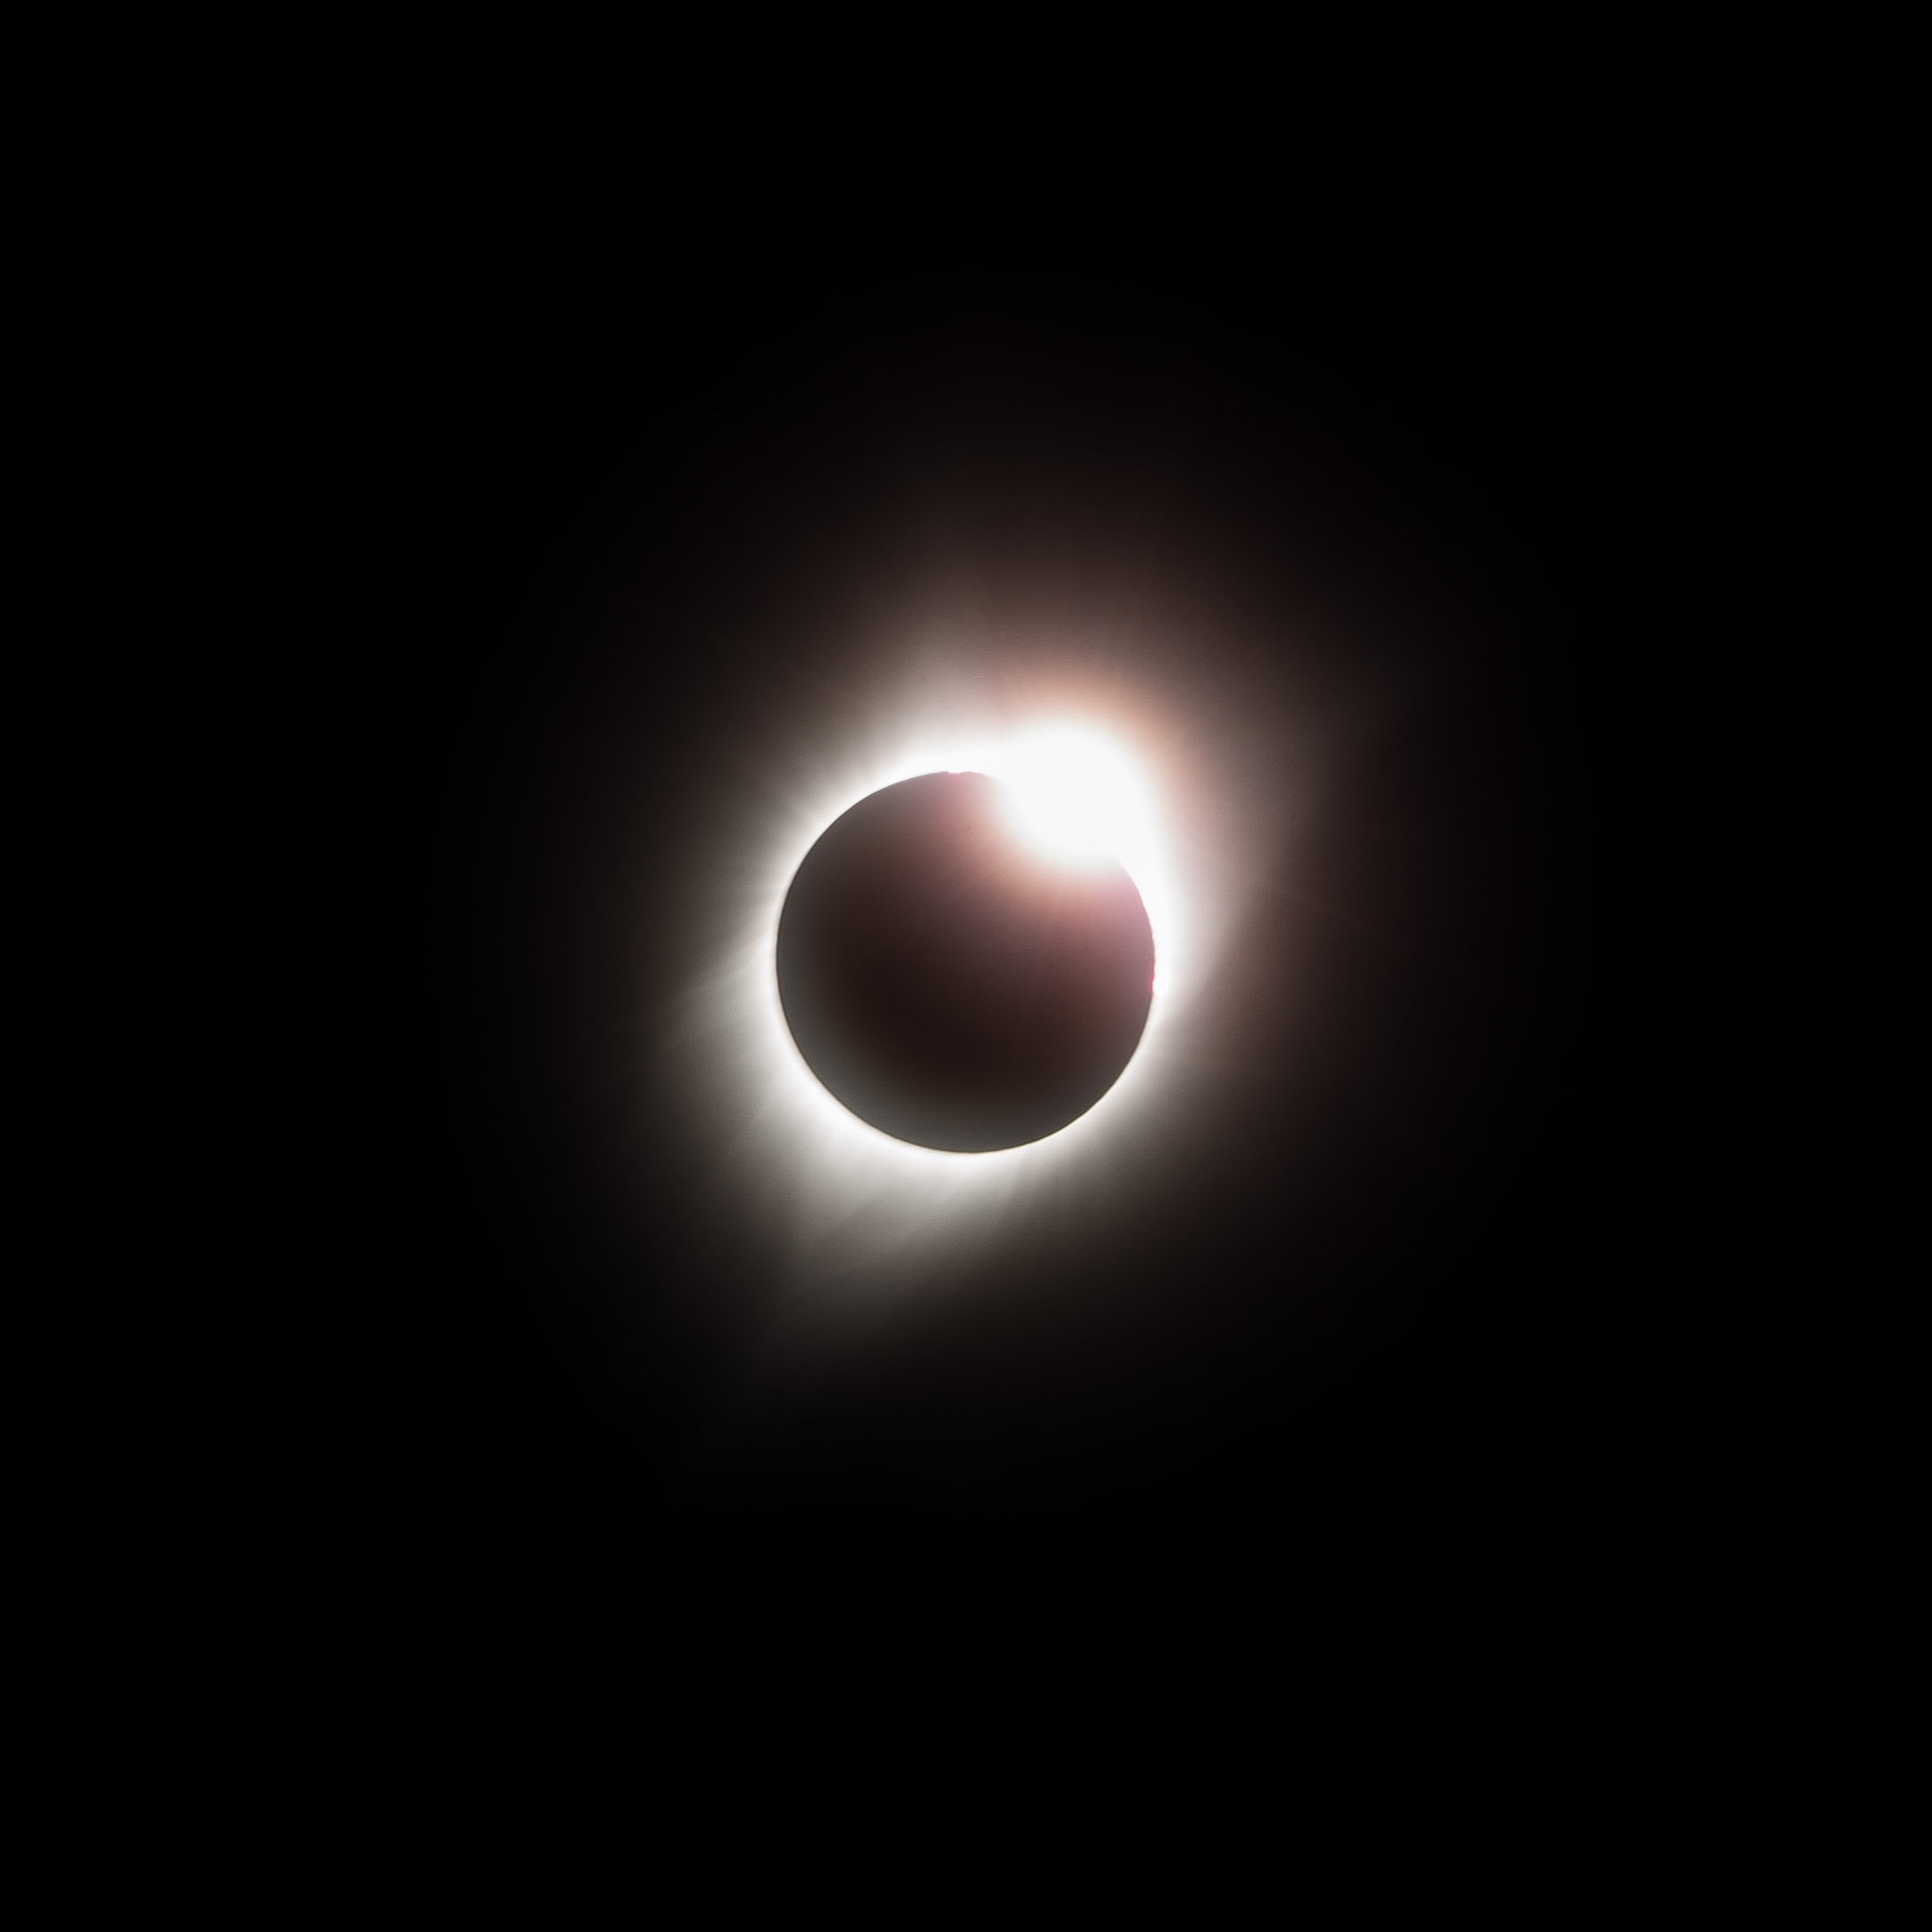 Photo Taken by  Mike Lindle  - The Diamond Ring Appears During Totality of a Solar Eclipse